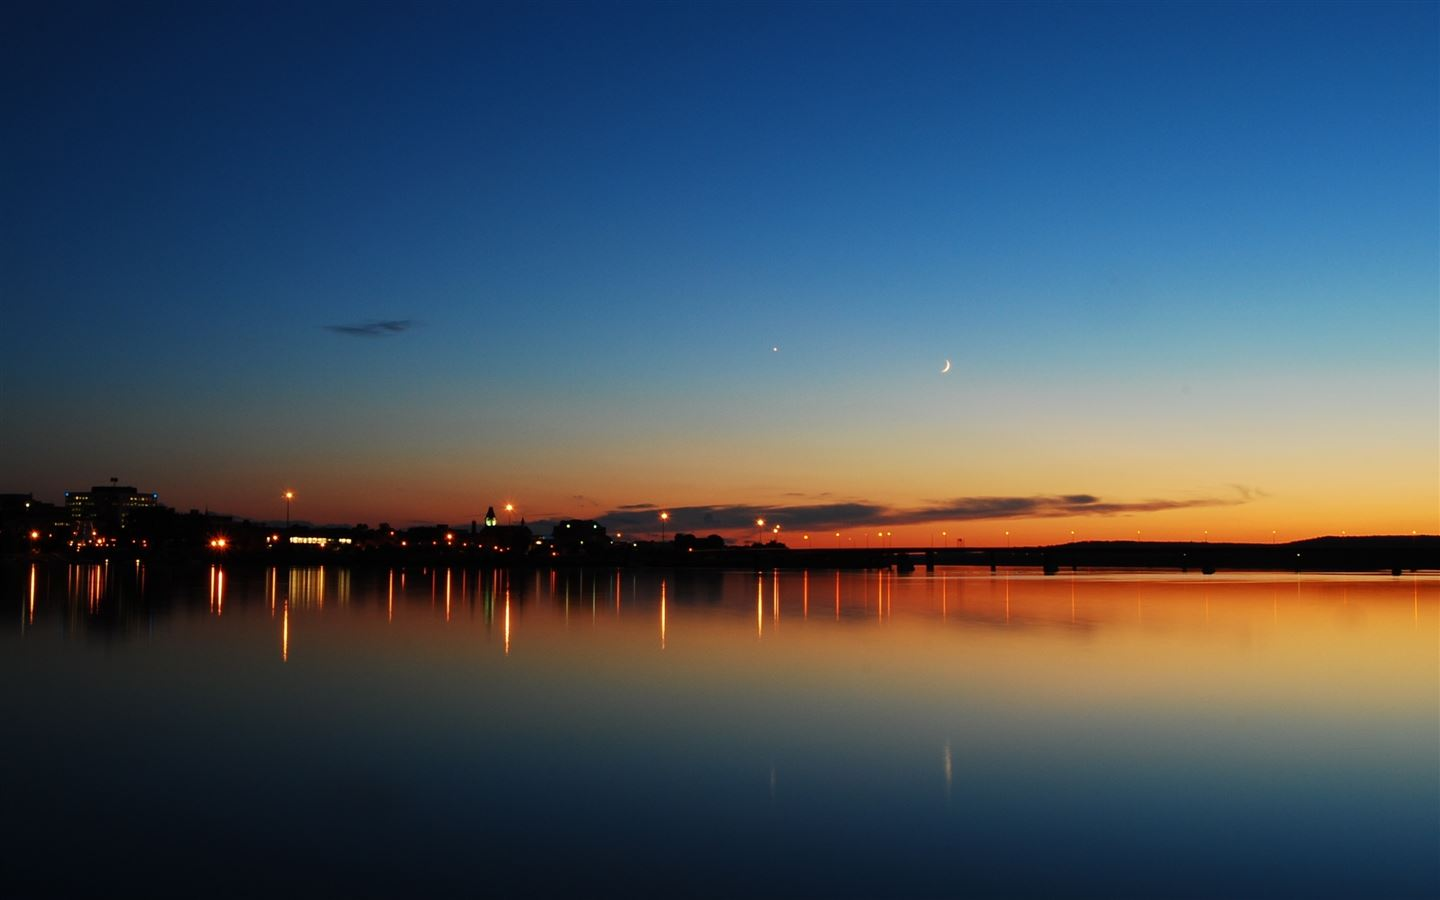 Night Panorama Mac Wallpaper Download | Free Mac ...